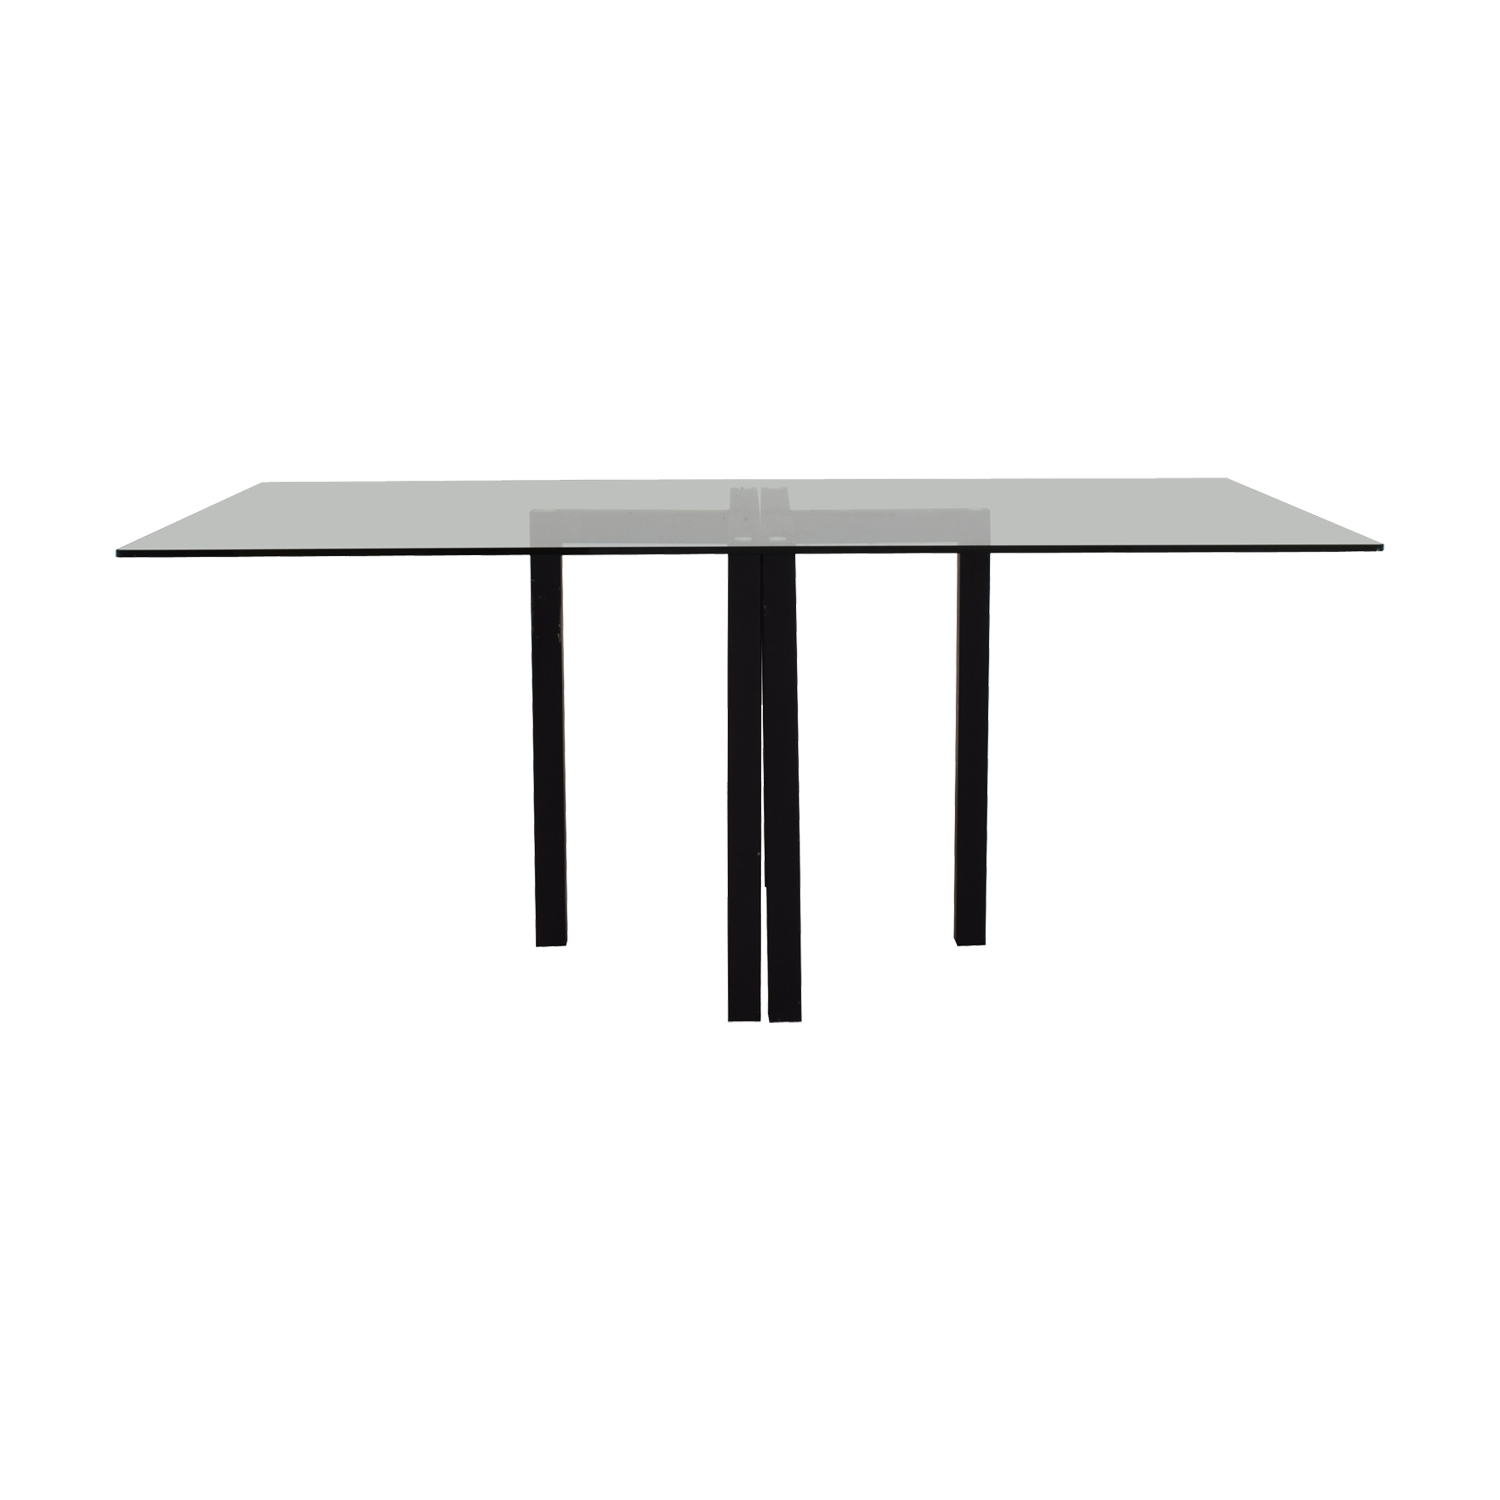 Crate & Barrel Glass Dining Table or Desk / Dinner Tables